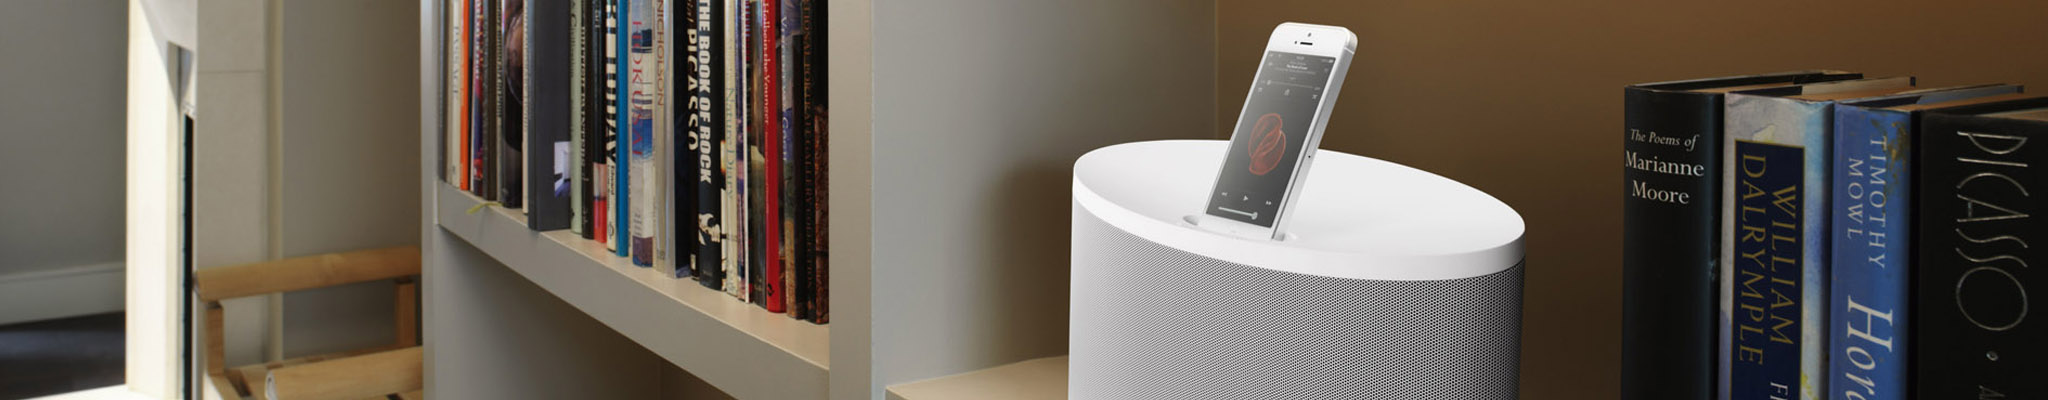 Bowers_Wilkins_Z2_White_iPhone5_White_Bookshelf